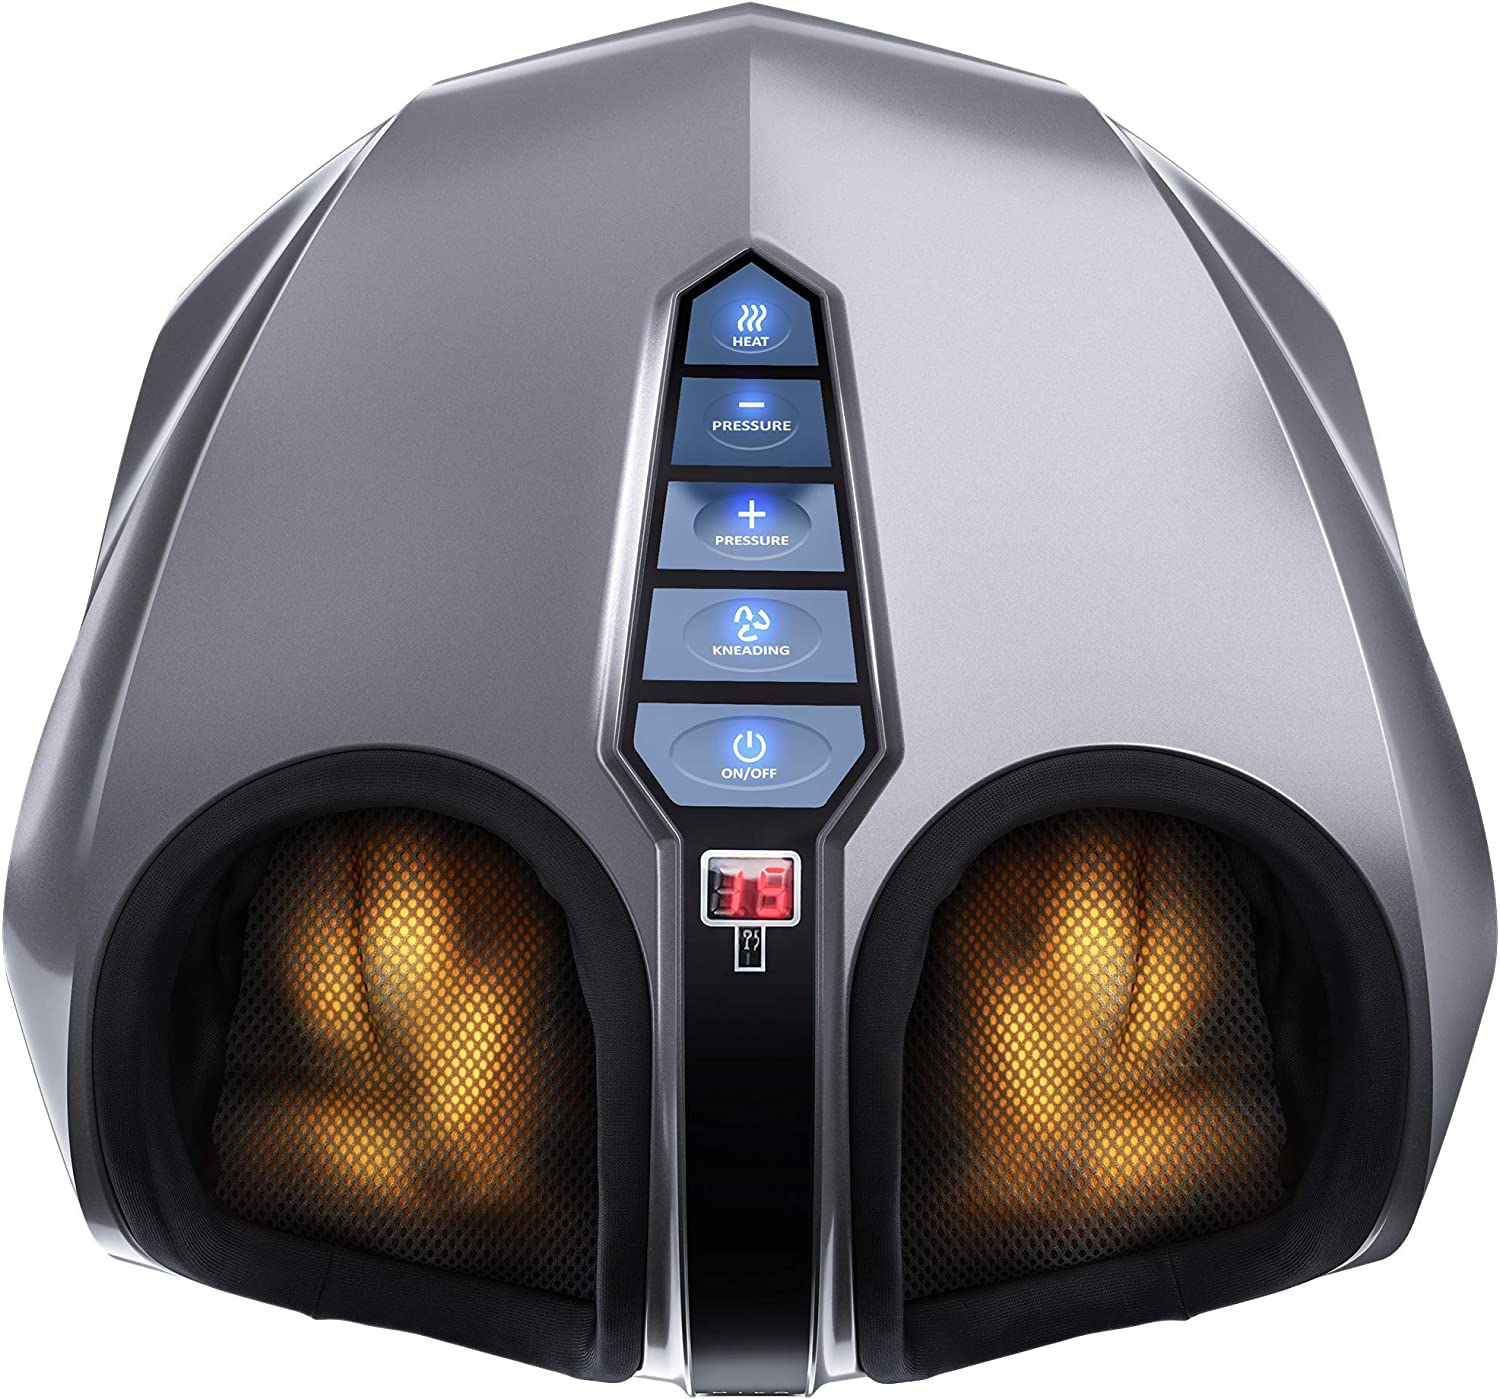 Top 7 Best foot massager for large feet - Buying Guide 2020 1